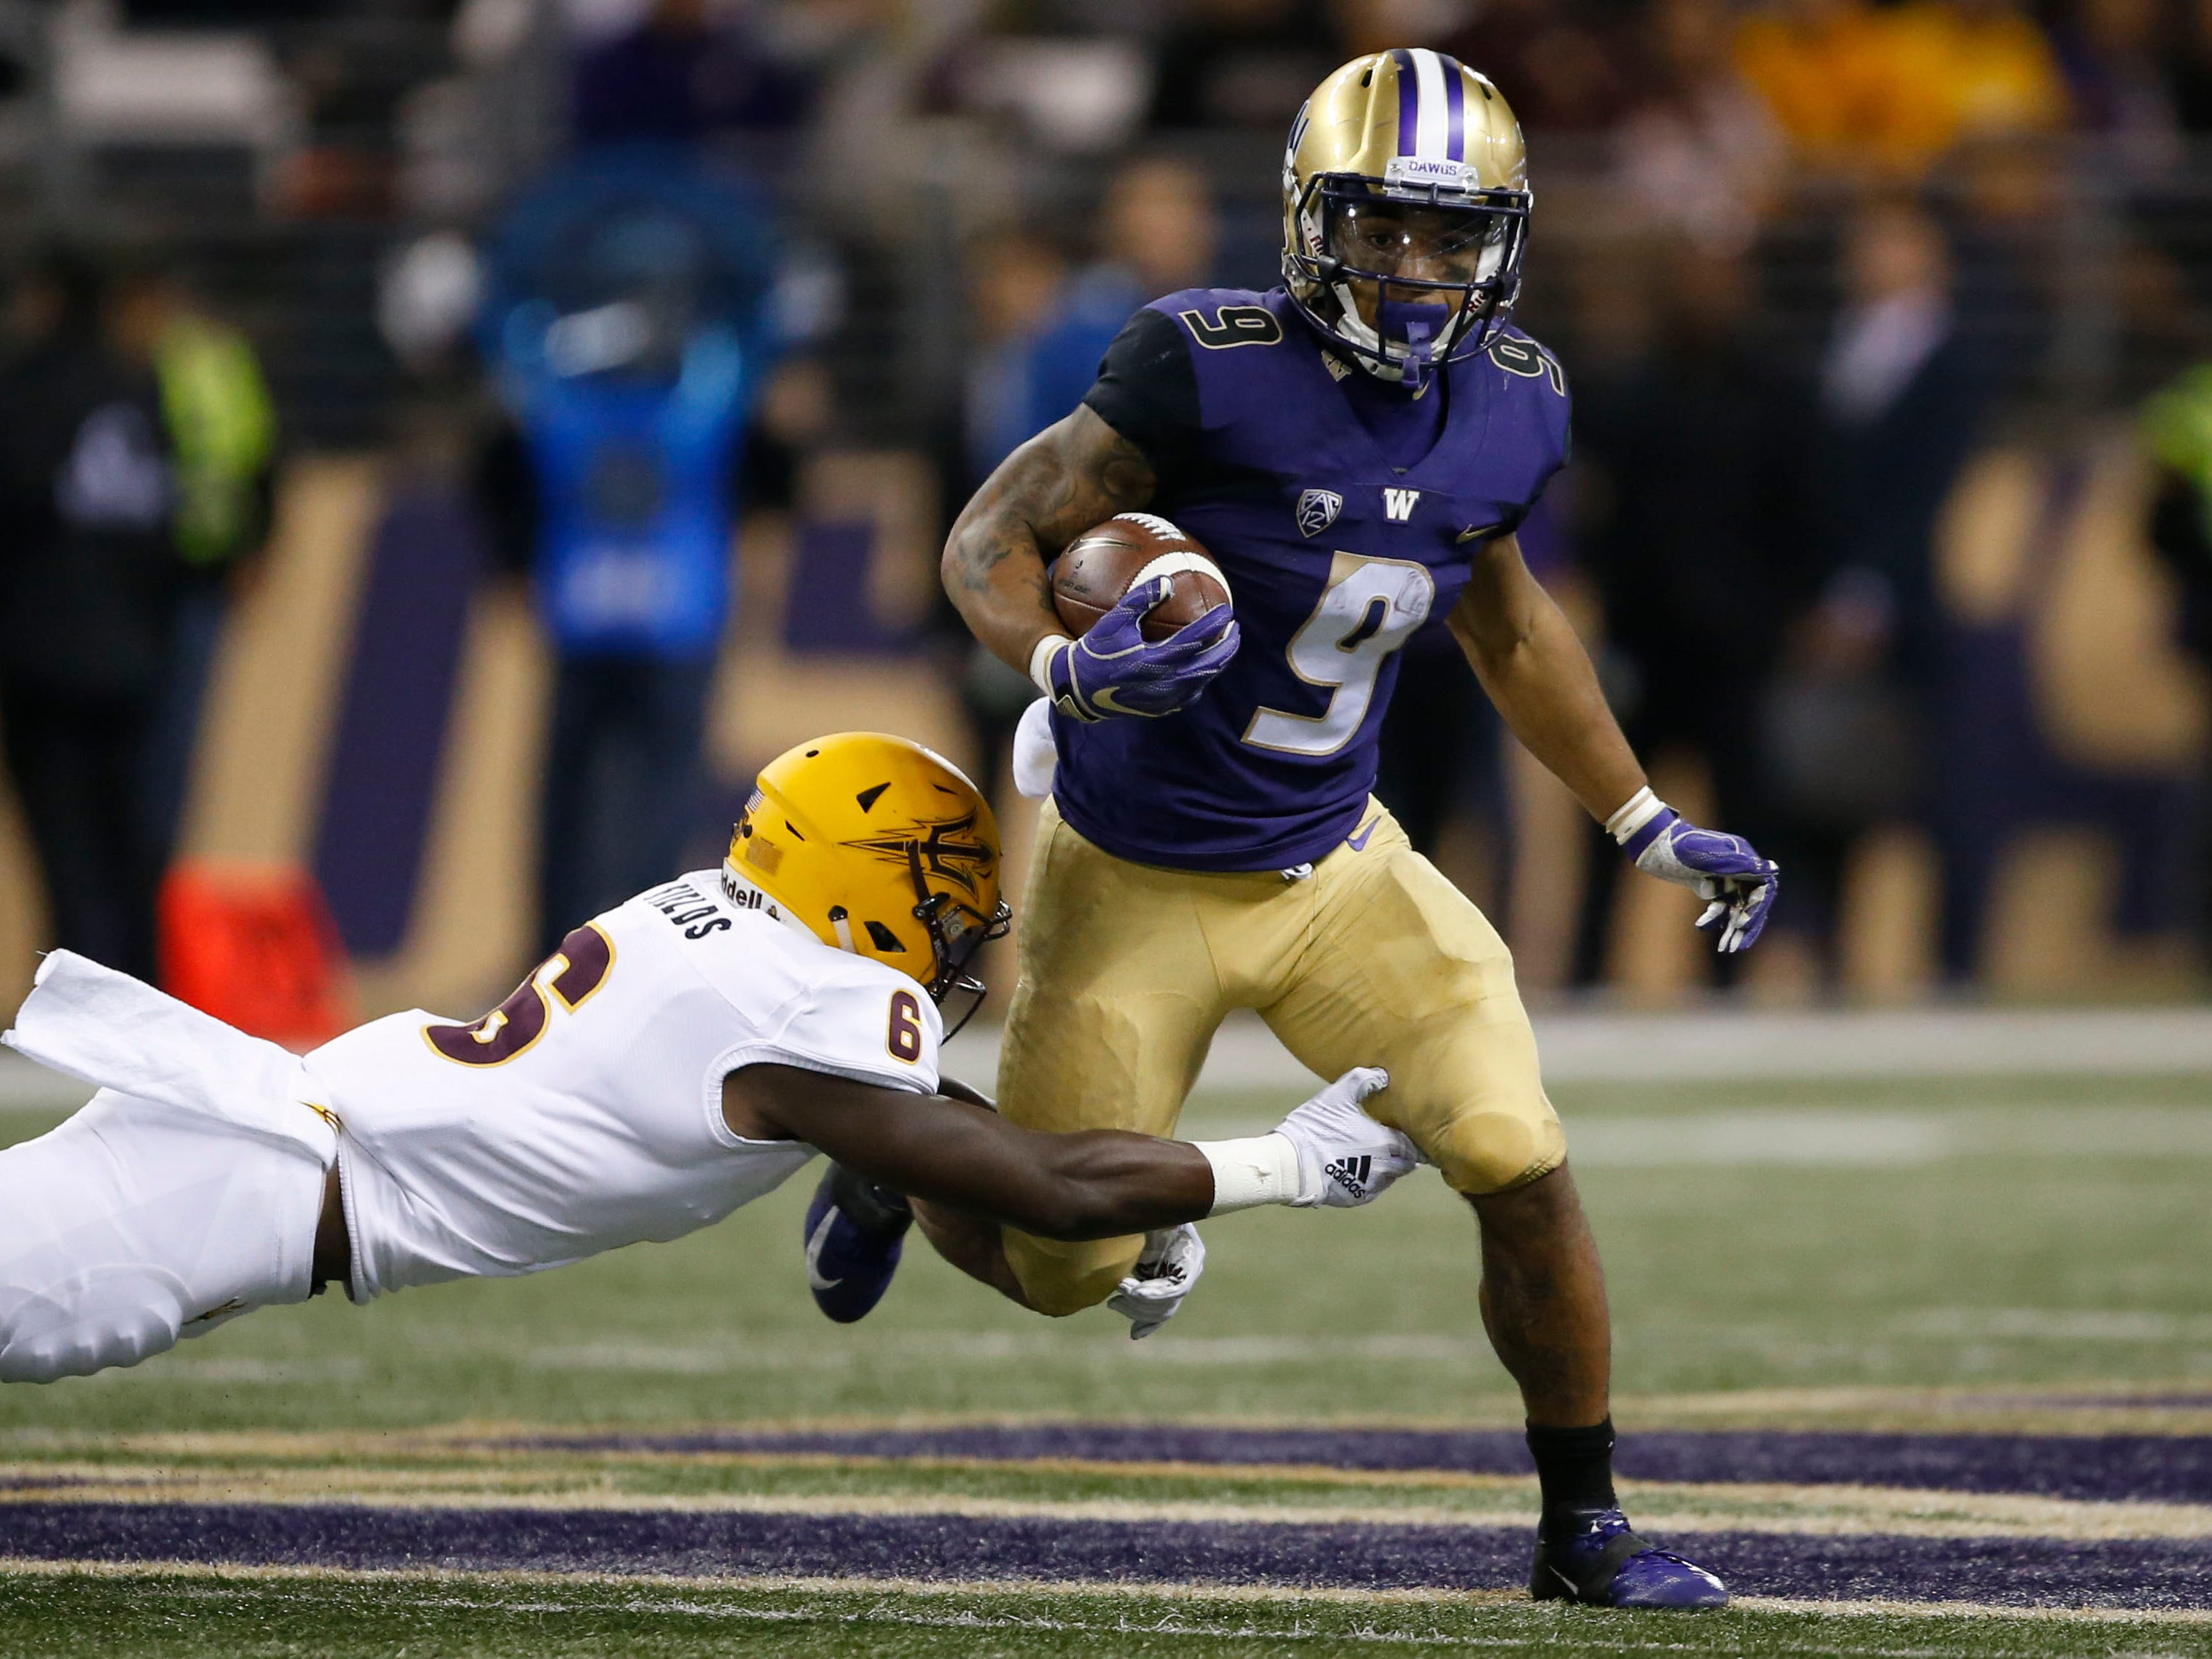 Sep 22, 2018; Seattle, WA, USA; Arizona State Sun Devils defensive back Evan Fields (6) tries to tackle Washington Huskies running back Myles Gaskin (9) during the fourth quarter at Husky Stadium.